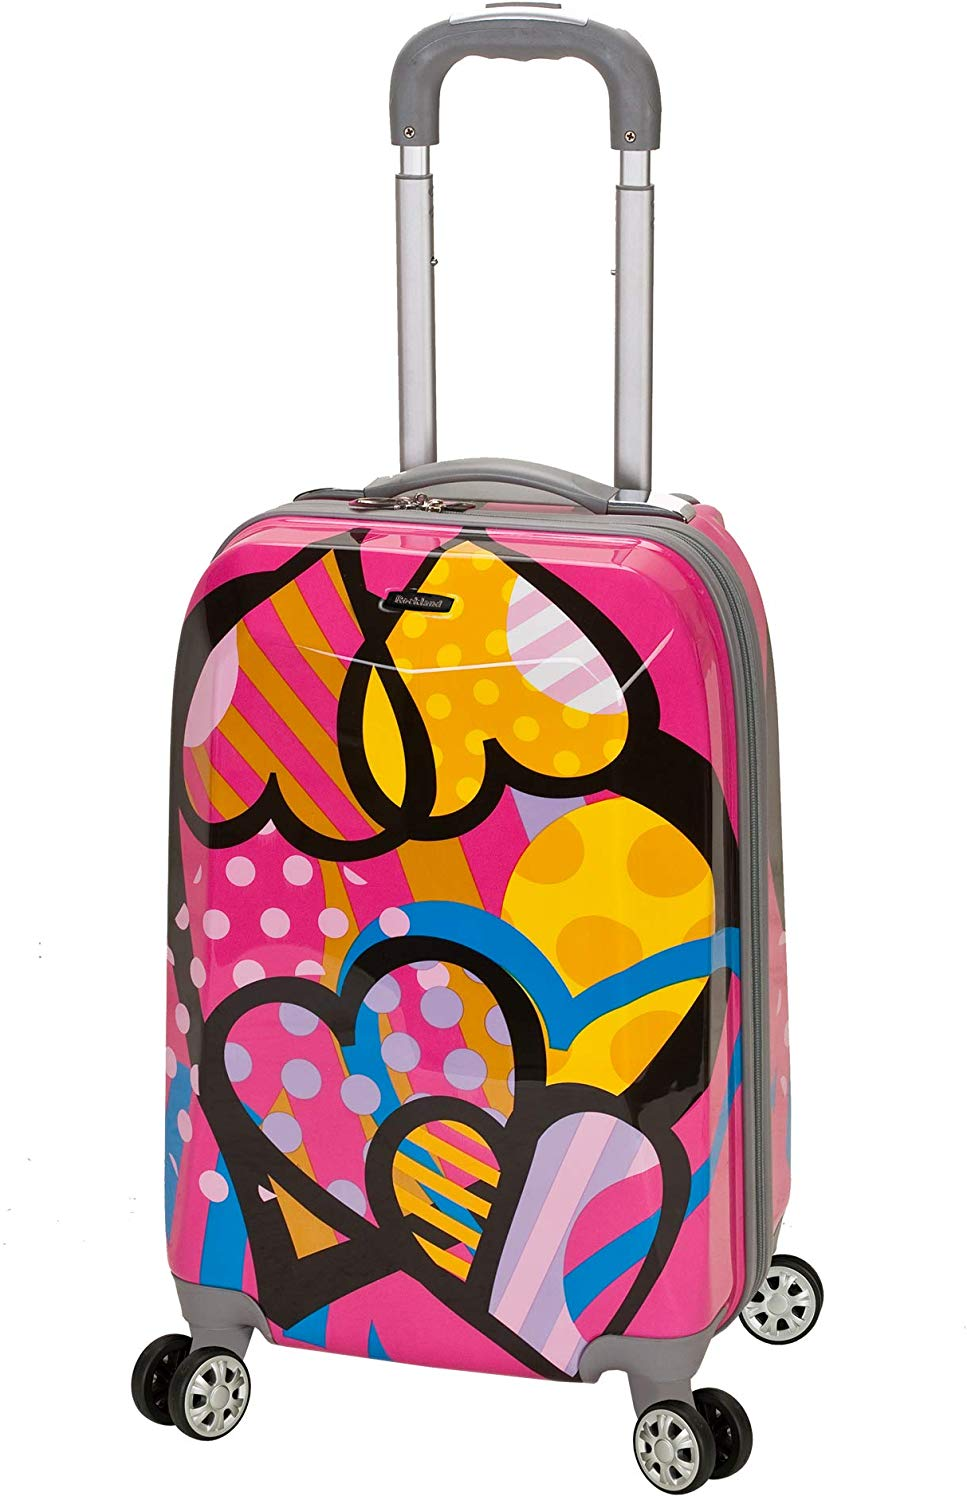 Rockland Kids Hardside Spinner Luggage